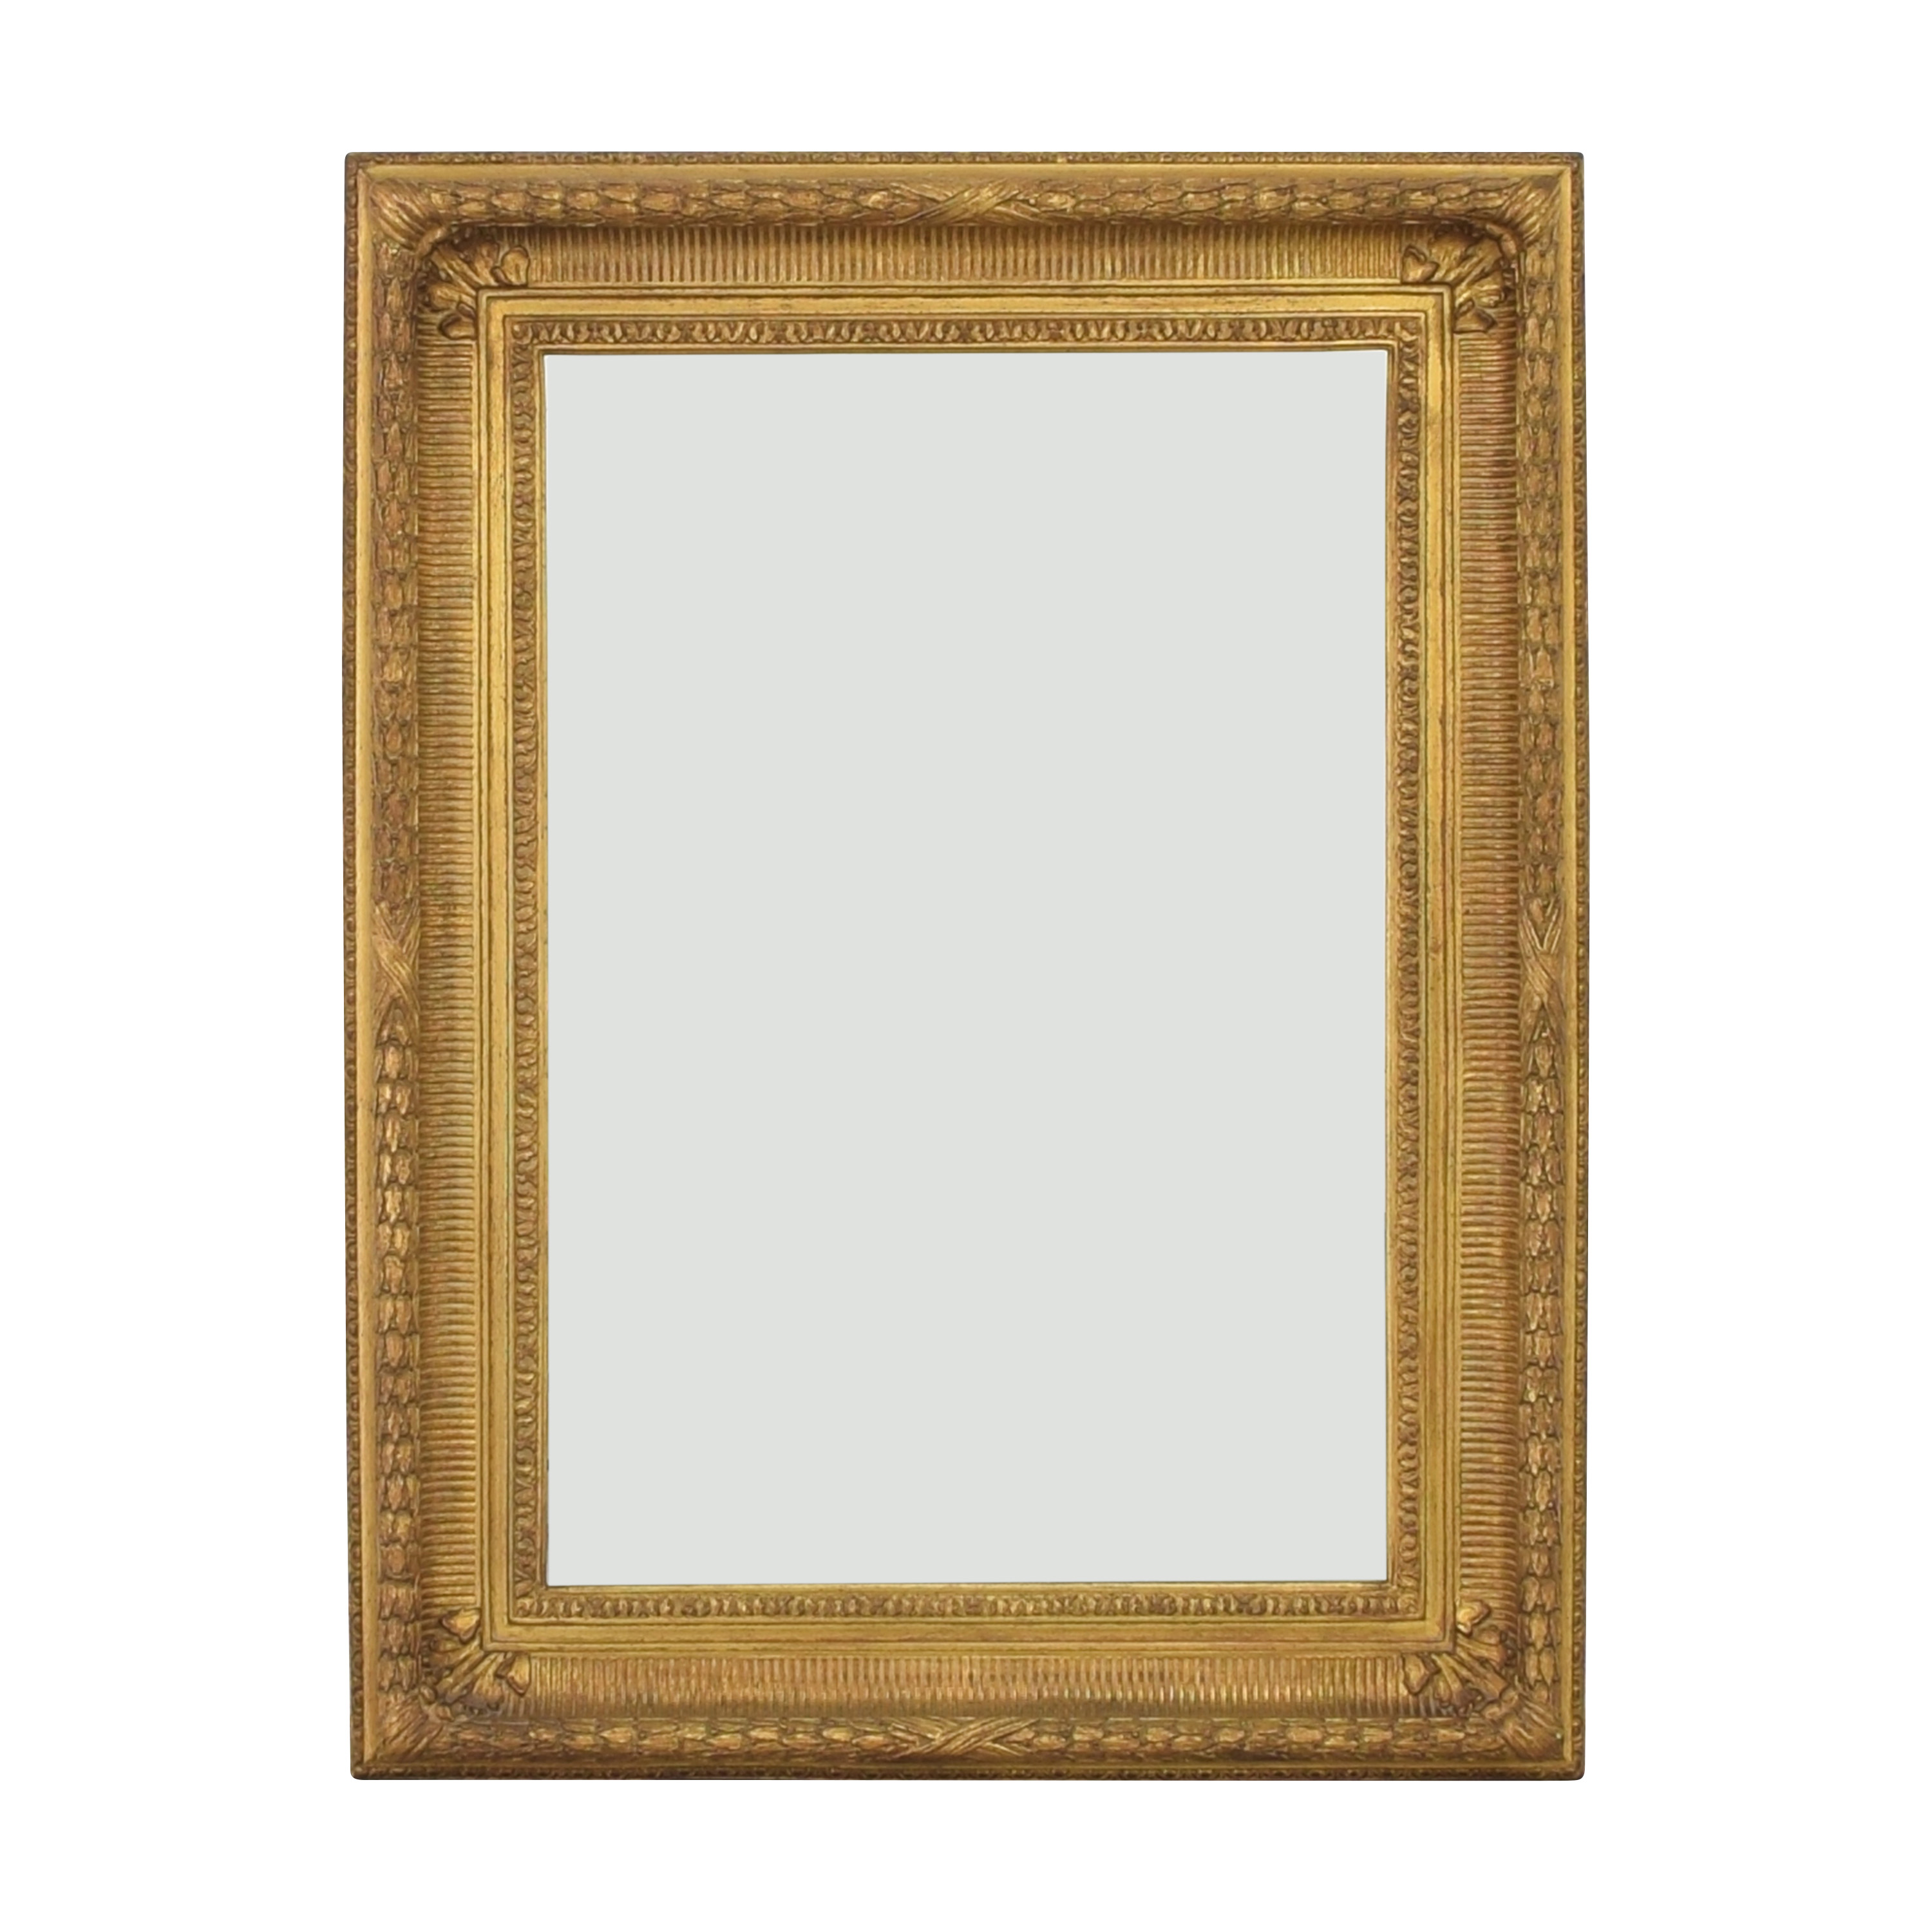 shop Carvers' Guild Framed Wall Mirror Carvers' Guild Mirrors